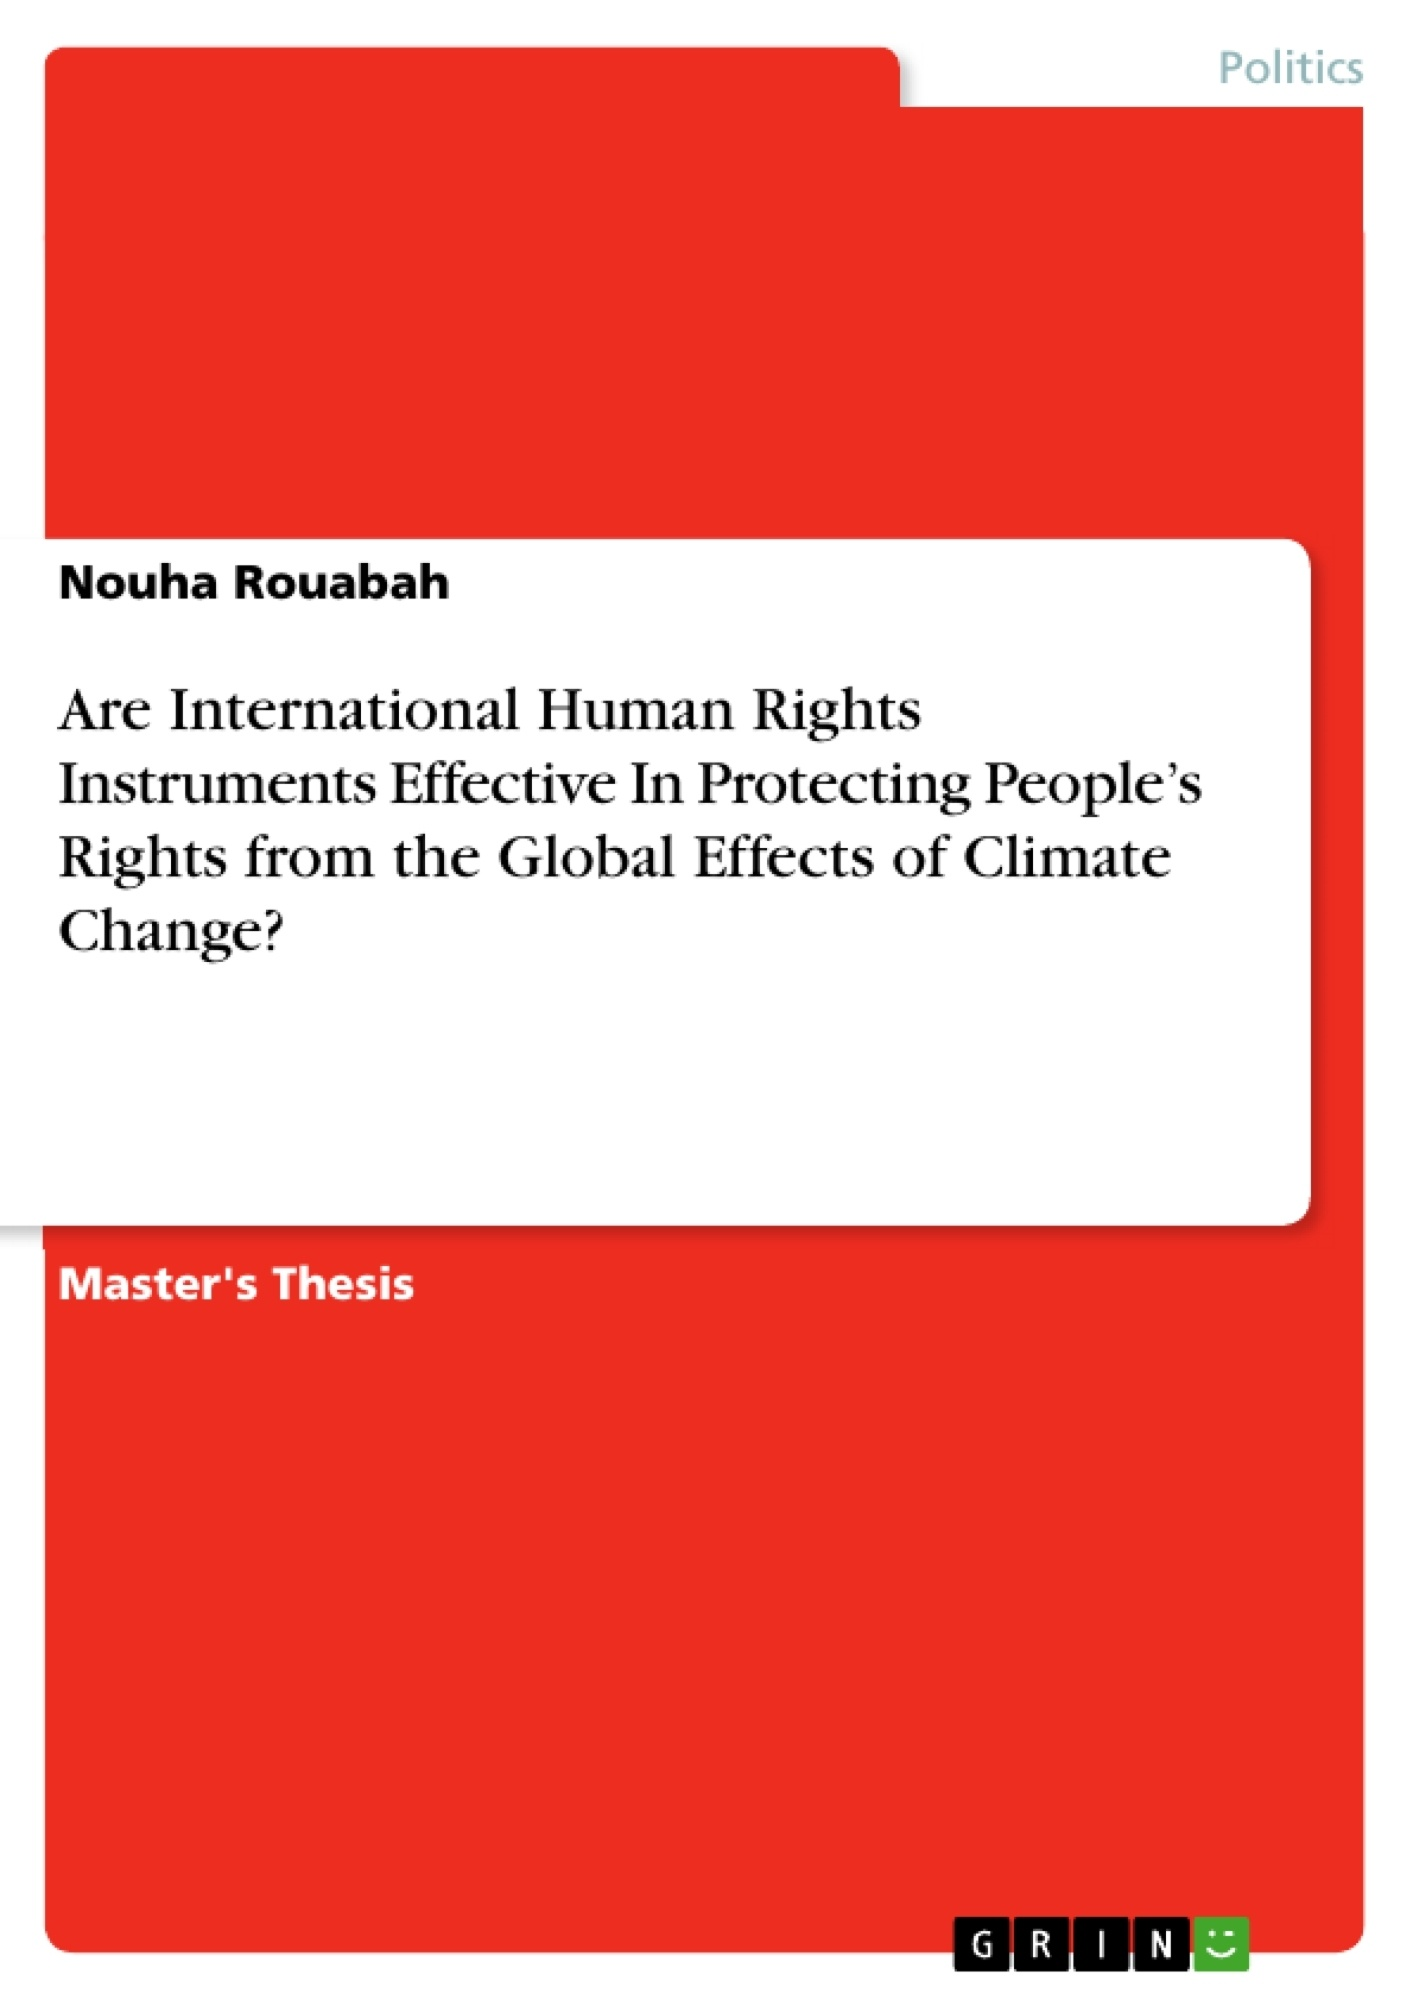 Title: Are International Human Rights Instruments Effective In Protecting People's Rights from the Global Effects of Climate Change?